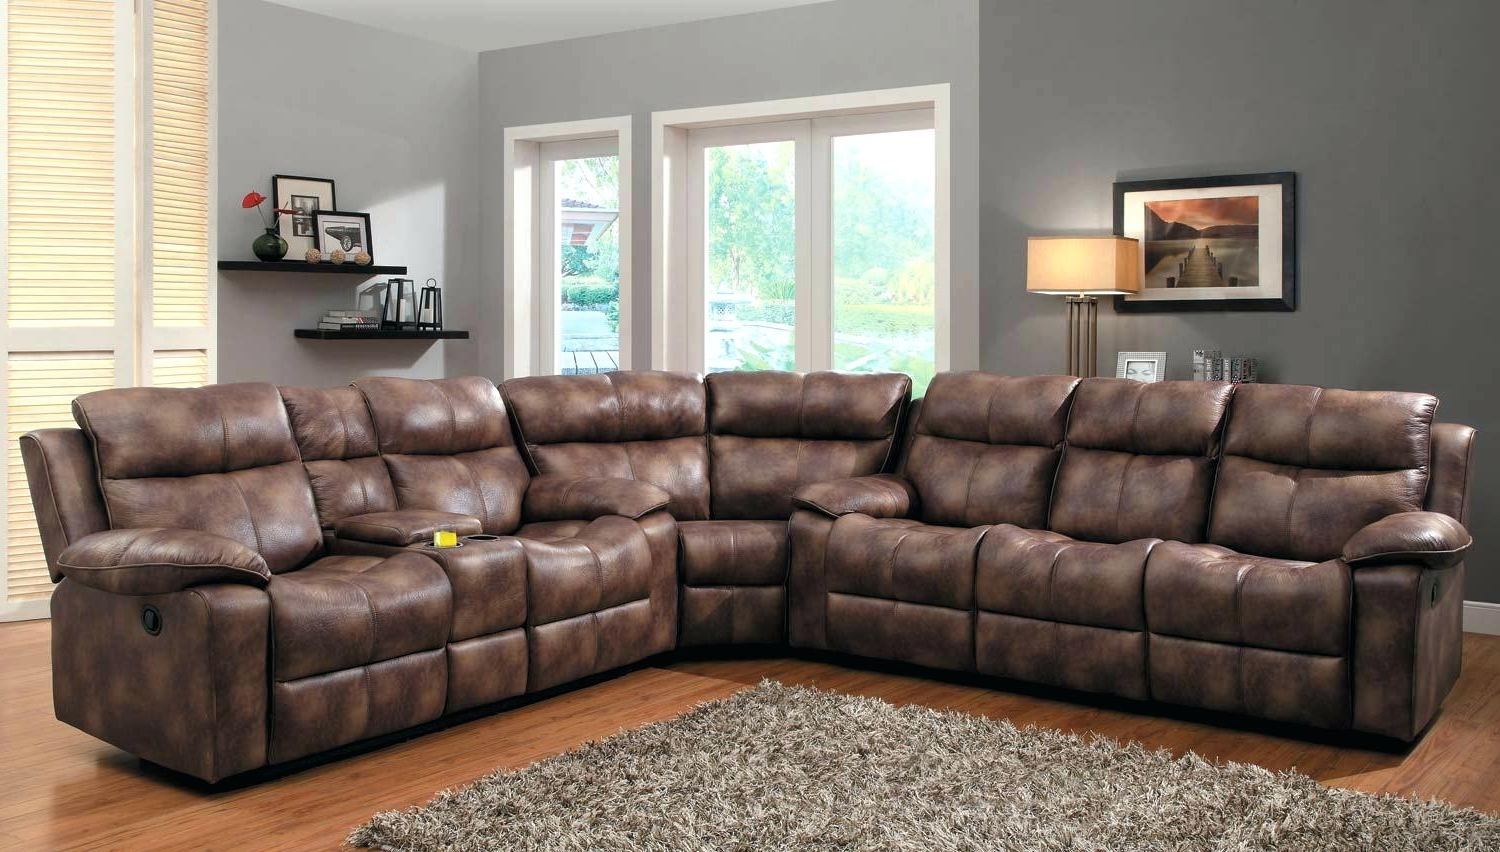 2019 Sectional Sofa With Recliners Recliner Repair Parts – Bikas With Regard To Valdosta Ga Sectional Sofas (View 18 of 20)